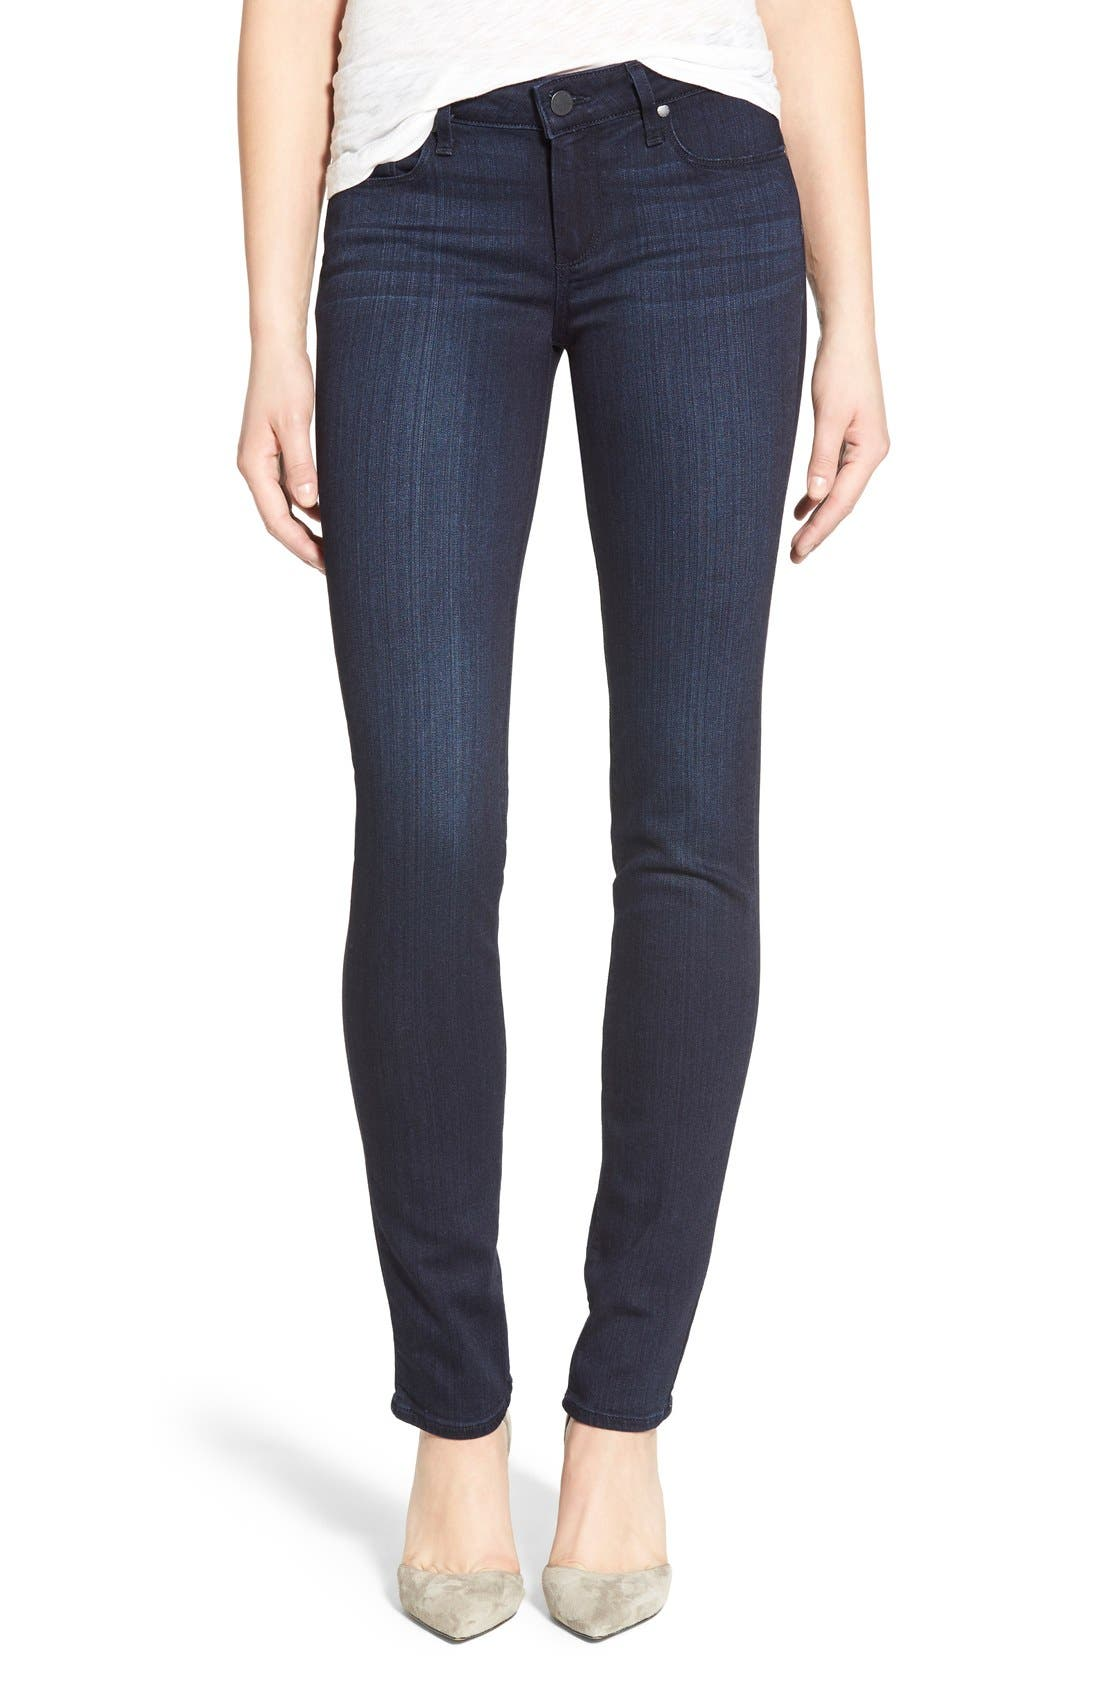 Alternate Image 1 Selected - PAIGE 'Skyline' Skinny Jeans (Everdeen) (Nordstrom Exclusive)